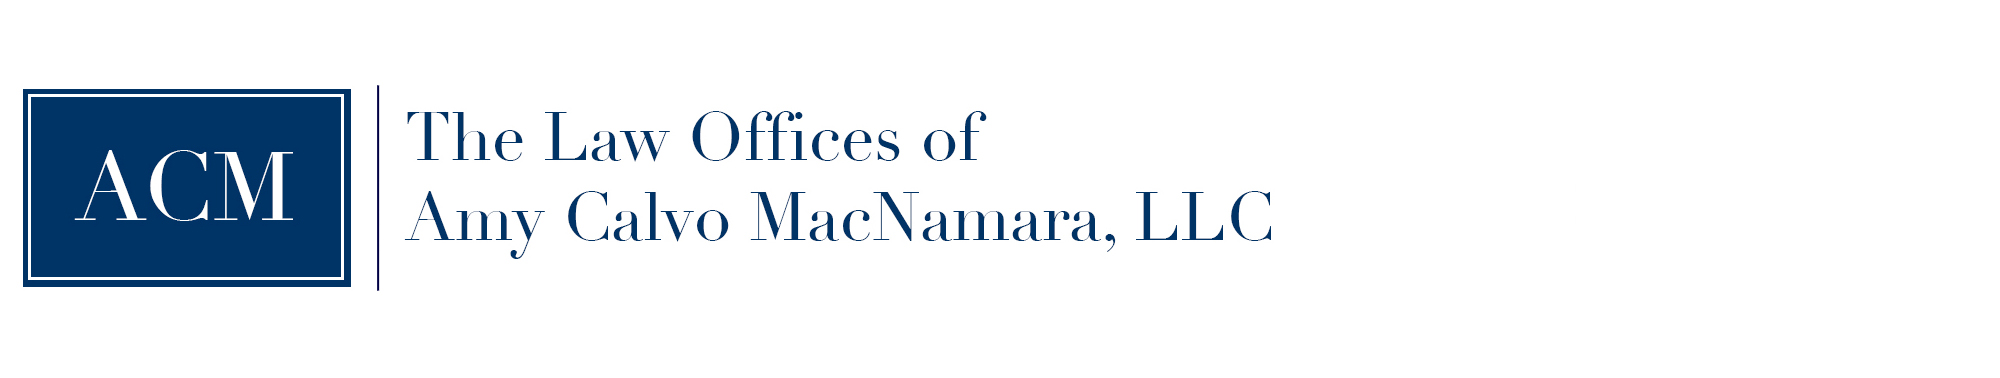 The Law Offices of Amy Calvo MacNamara LLC